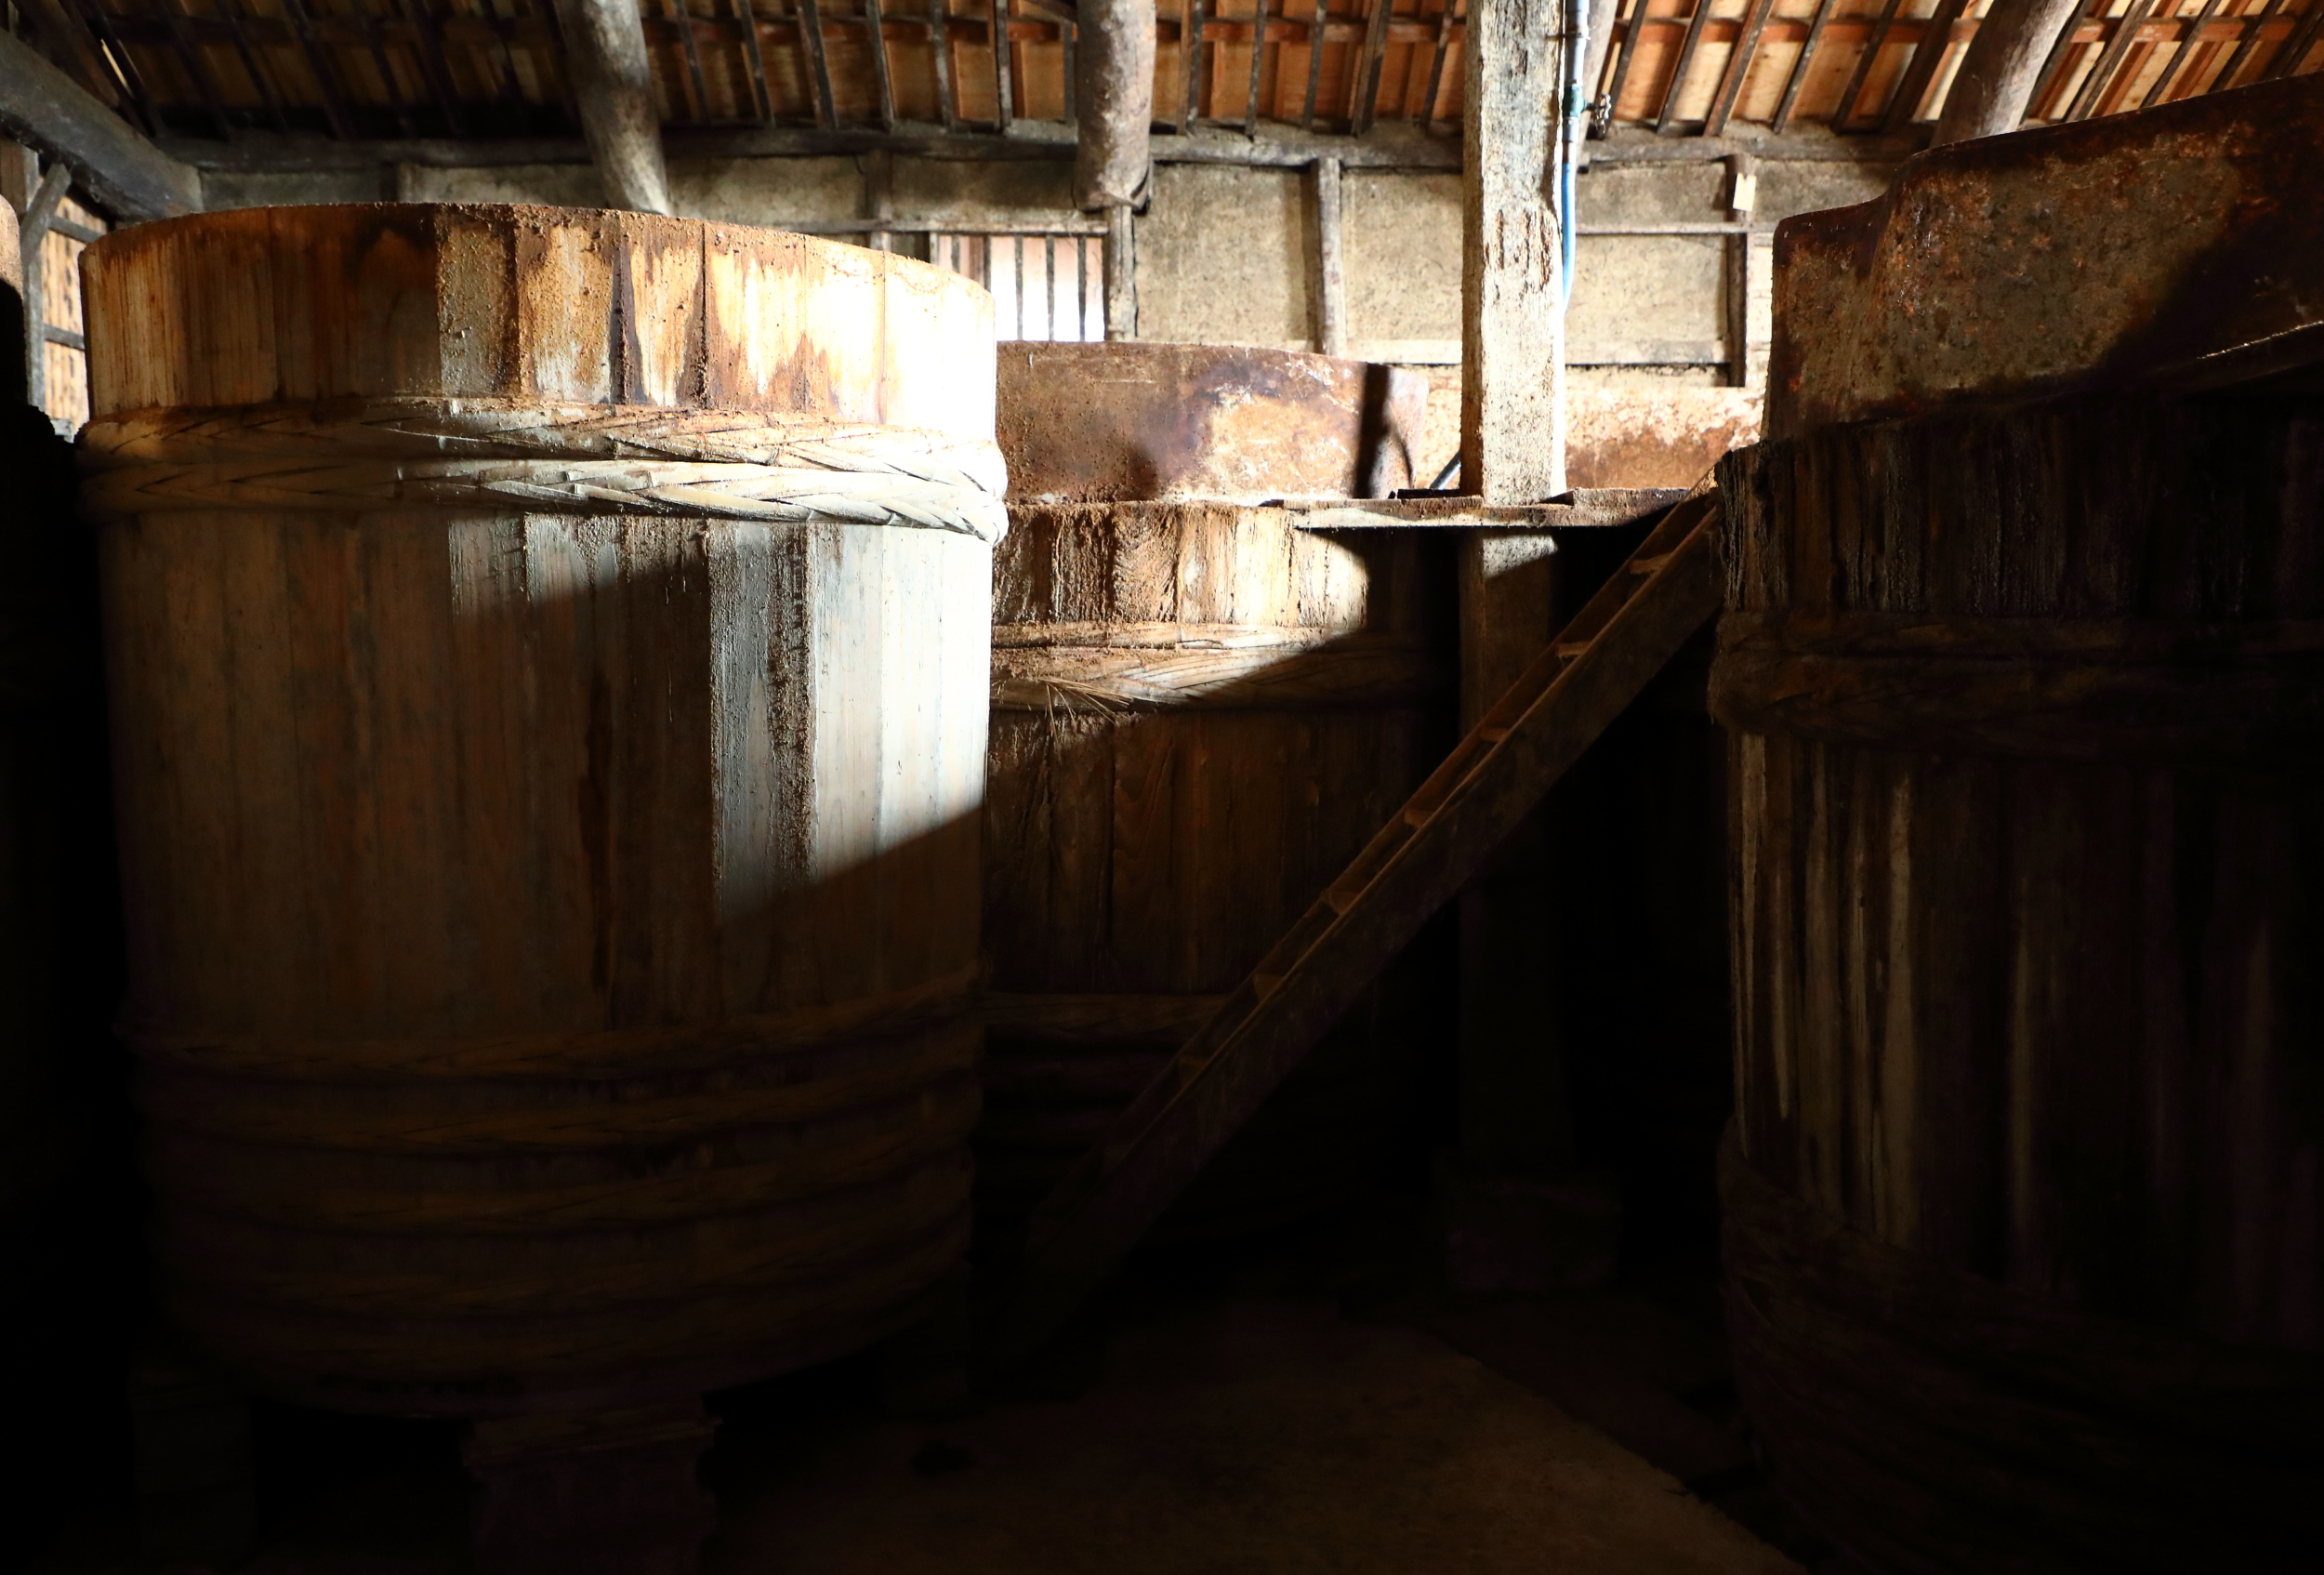 The  kioke  at Yamaroku are 2 meters high and 2 meters and 30 centimeters wide and hold 5,700 liters of  moromi , the fermenting mash of soy beans, wheat, sea salt, and water. Some of the  kioke  are more than seventy-five years old.